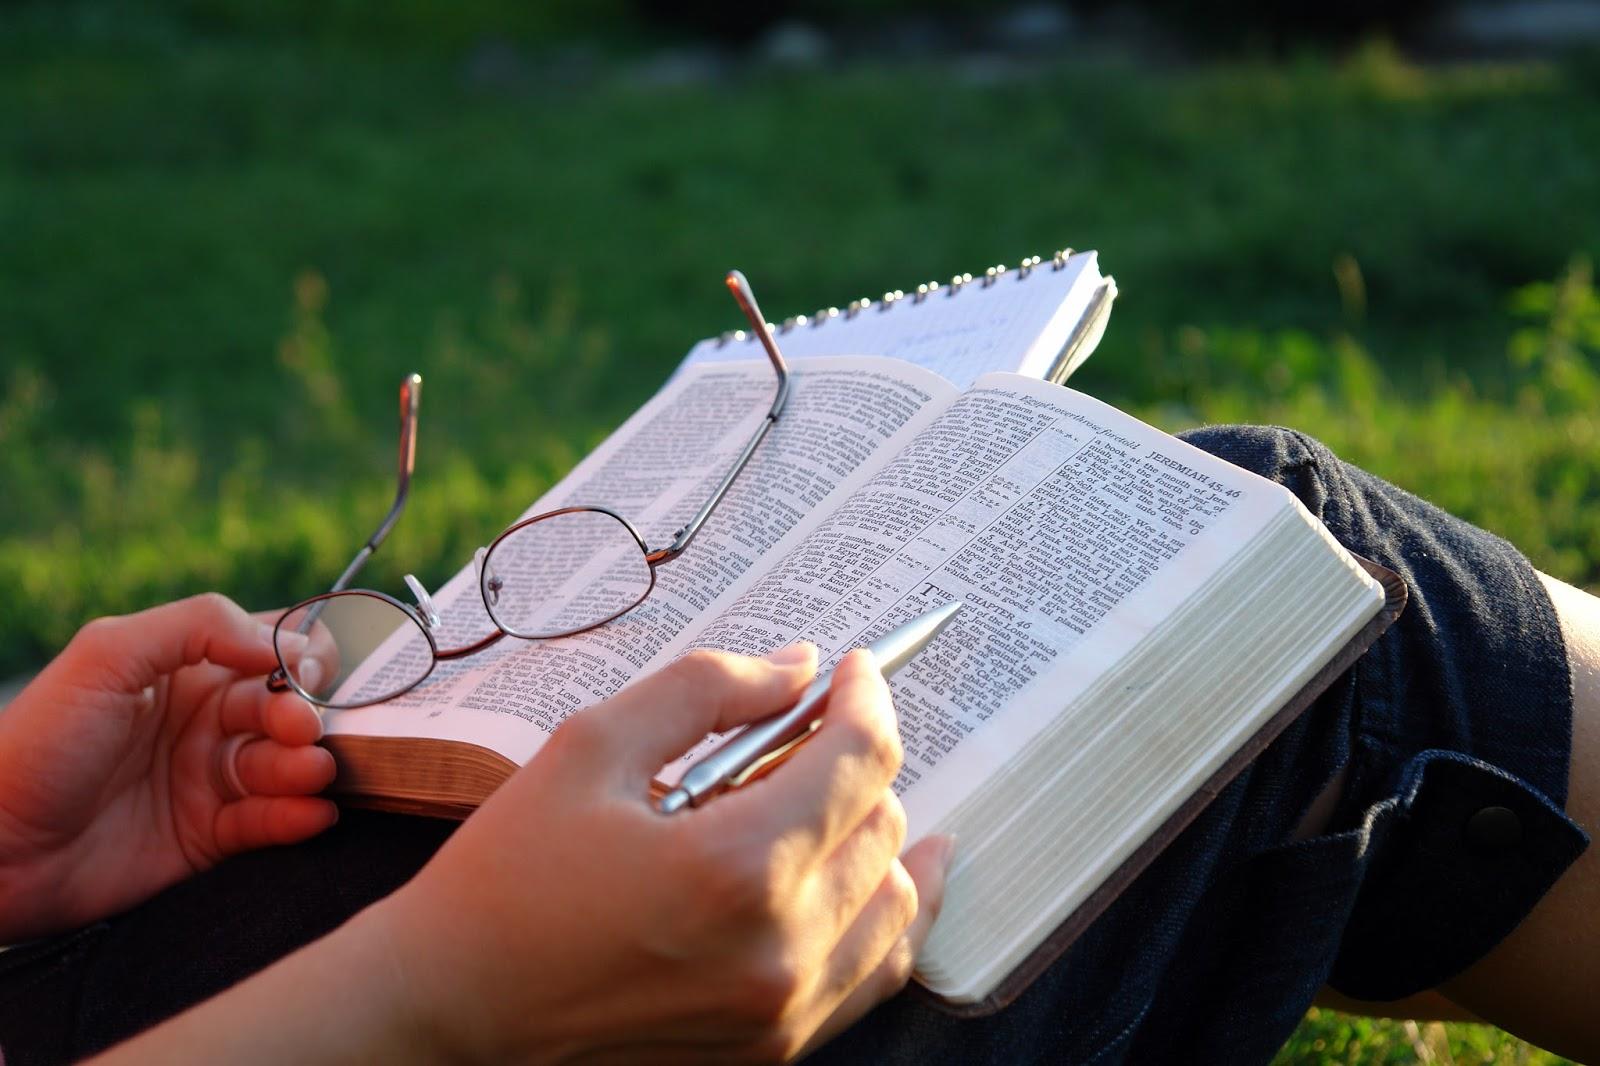 How can you improve the way you read and meditate on the Bible? How can you learn to listen to the Lord's voice better?